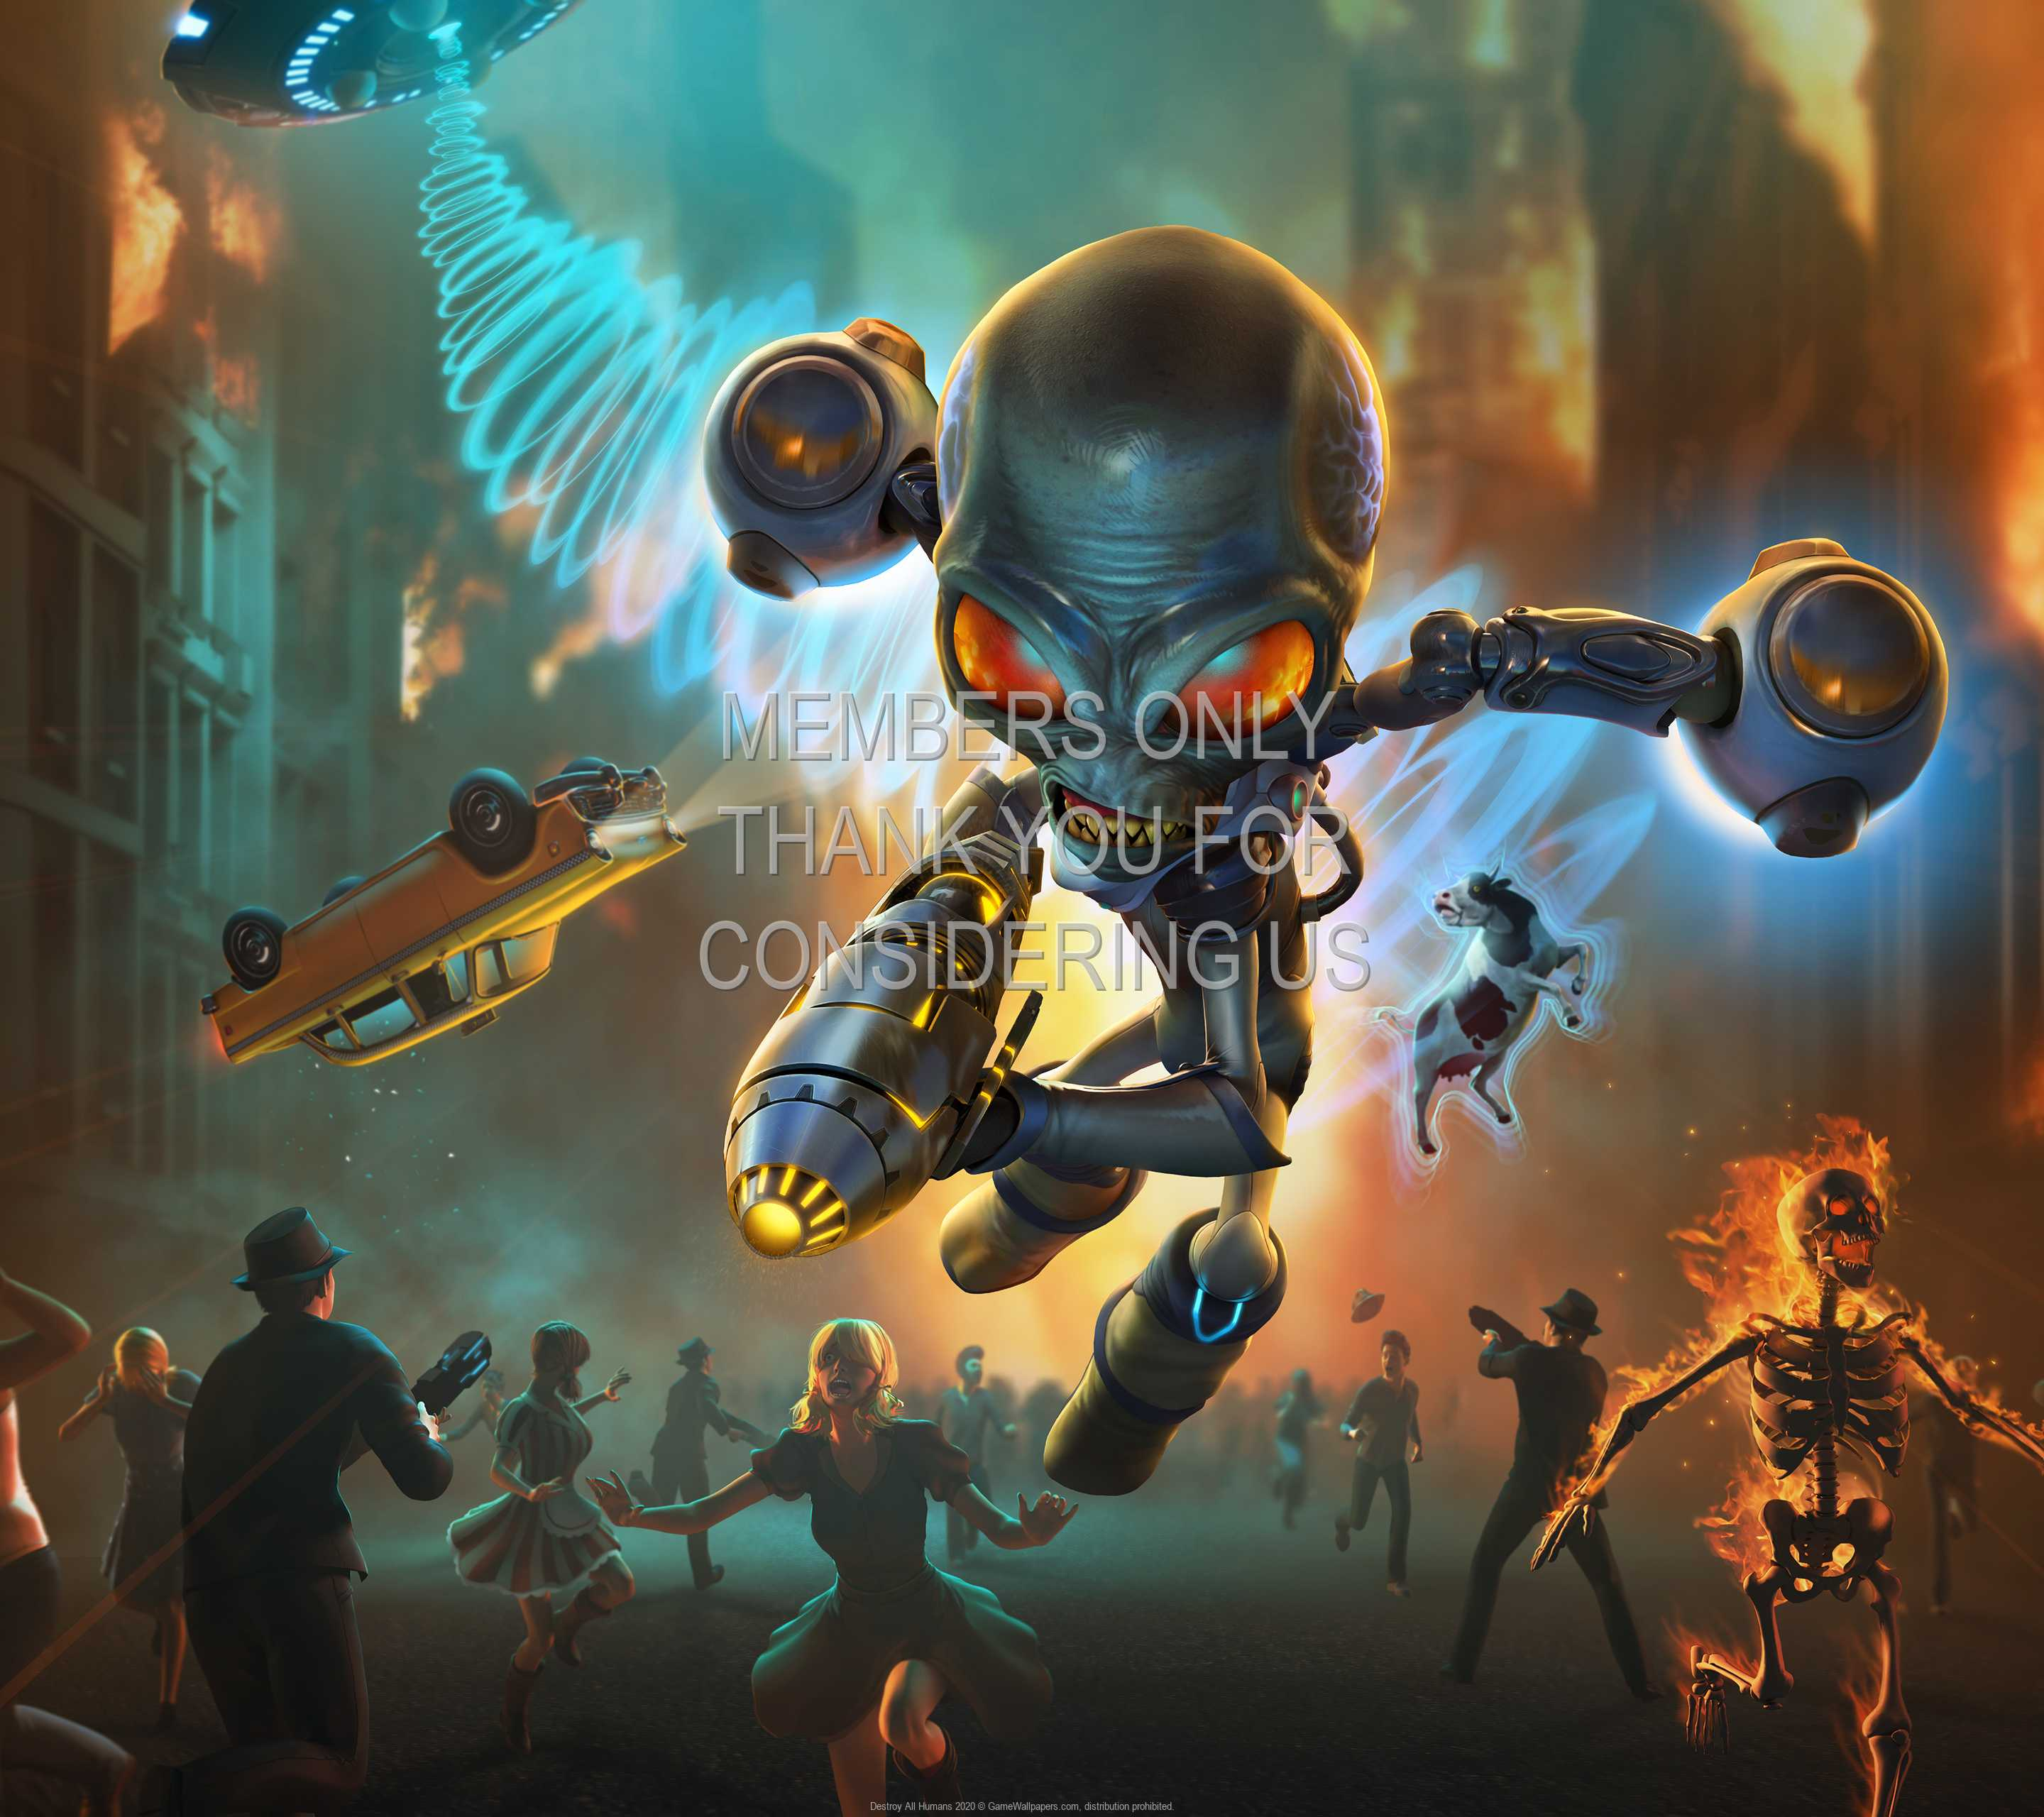 Destroy All Humans 2020 1440p Horizontal Mobile wallpaper or background 01